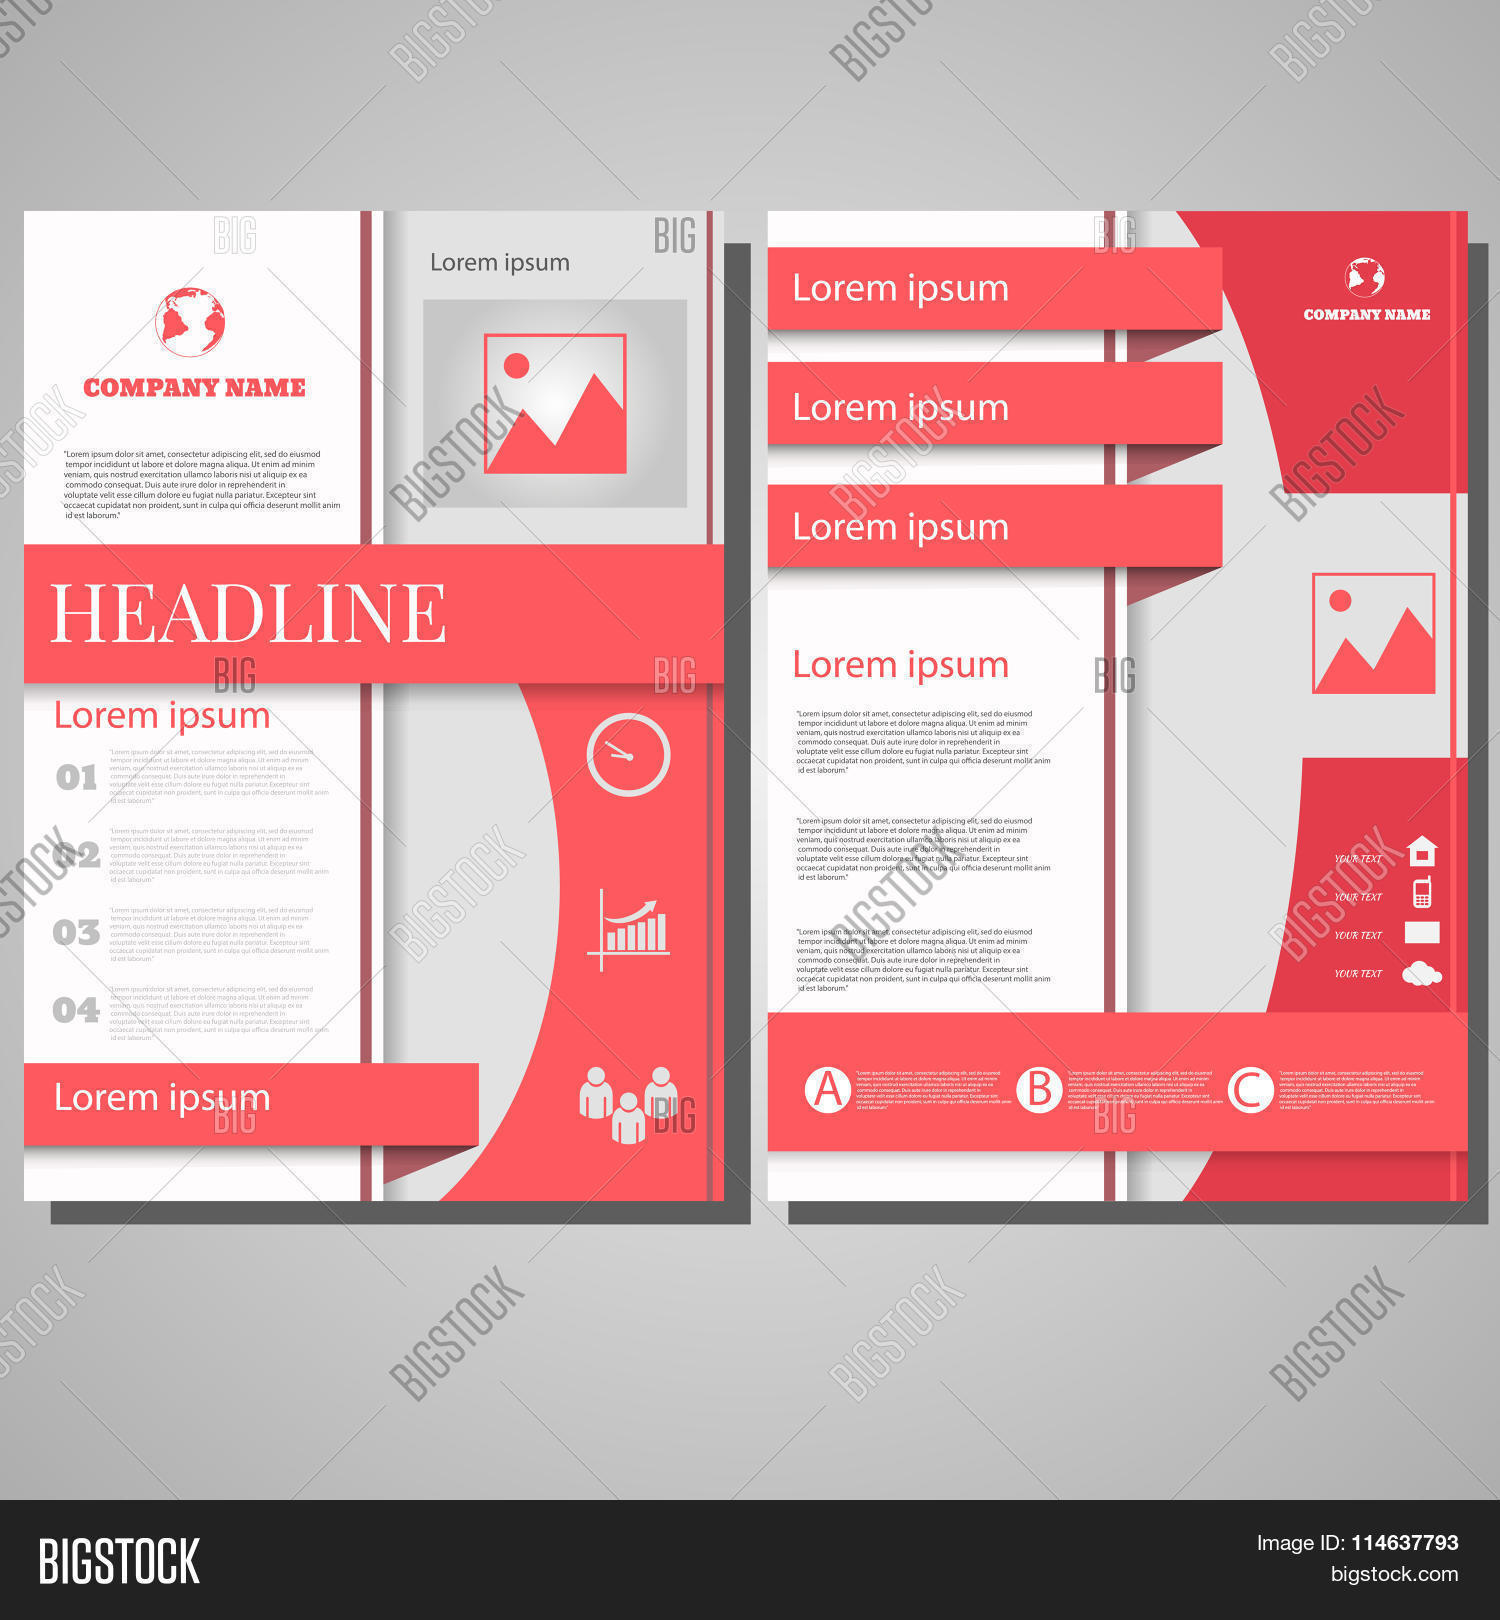 Pink Brochure Flyer Design Layout Template, Size A4, Front Page ...